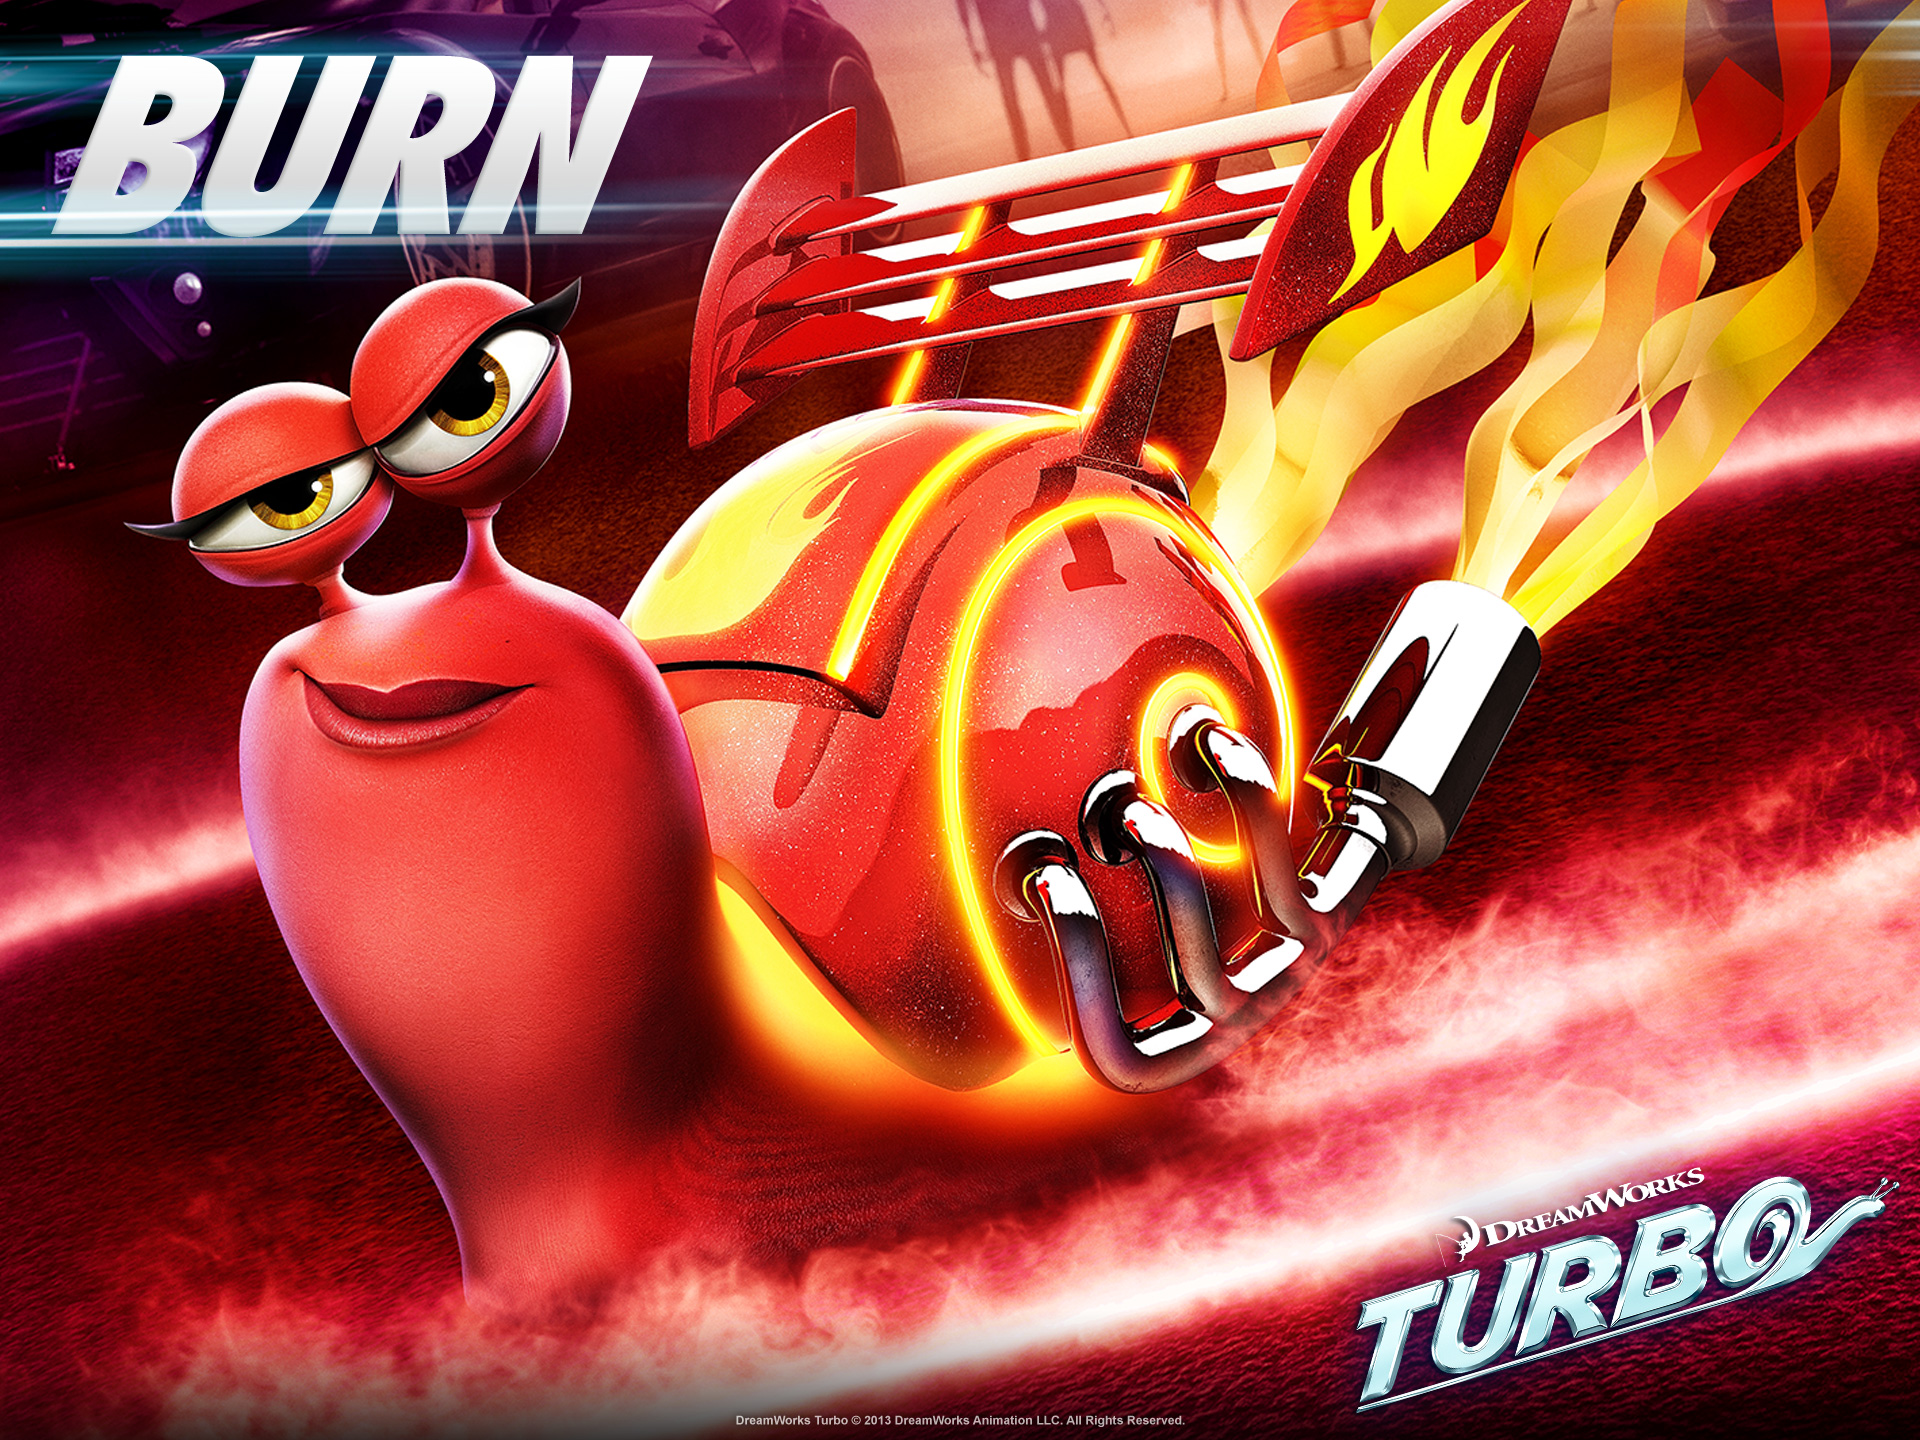 turbo full hd wallpaper and background image | 1920x1440 | id:510964